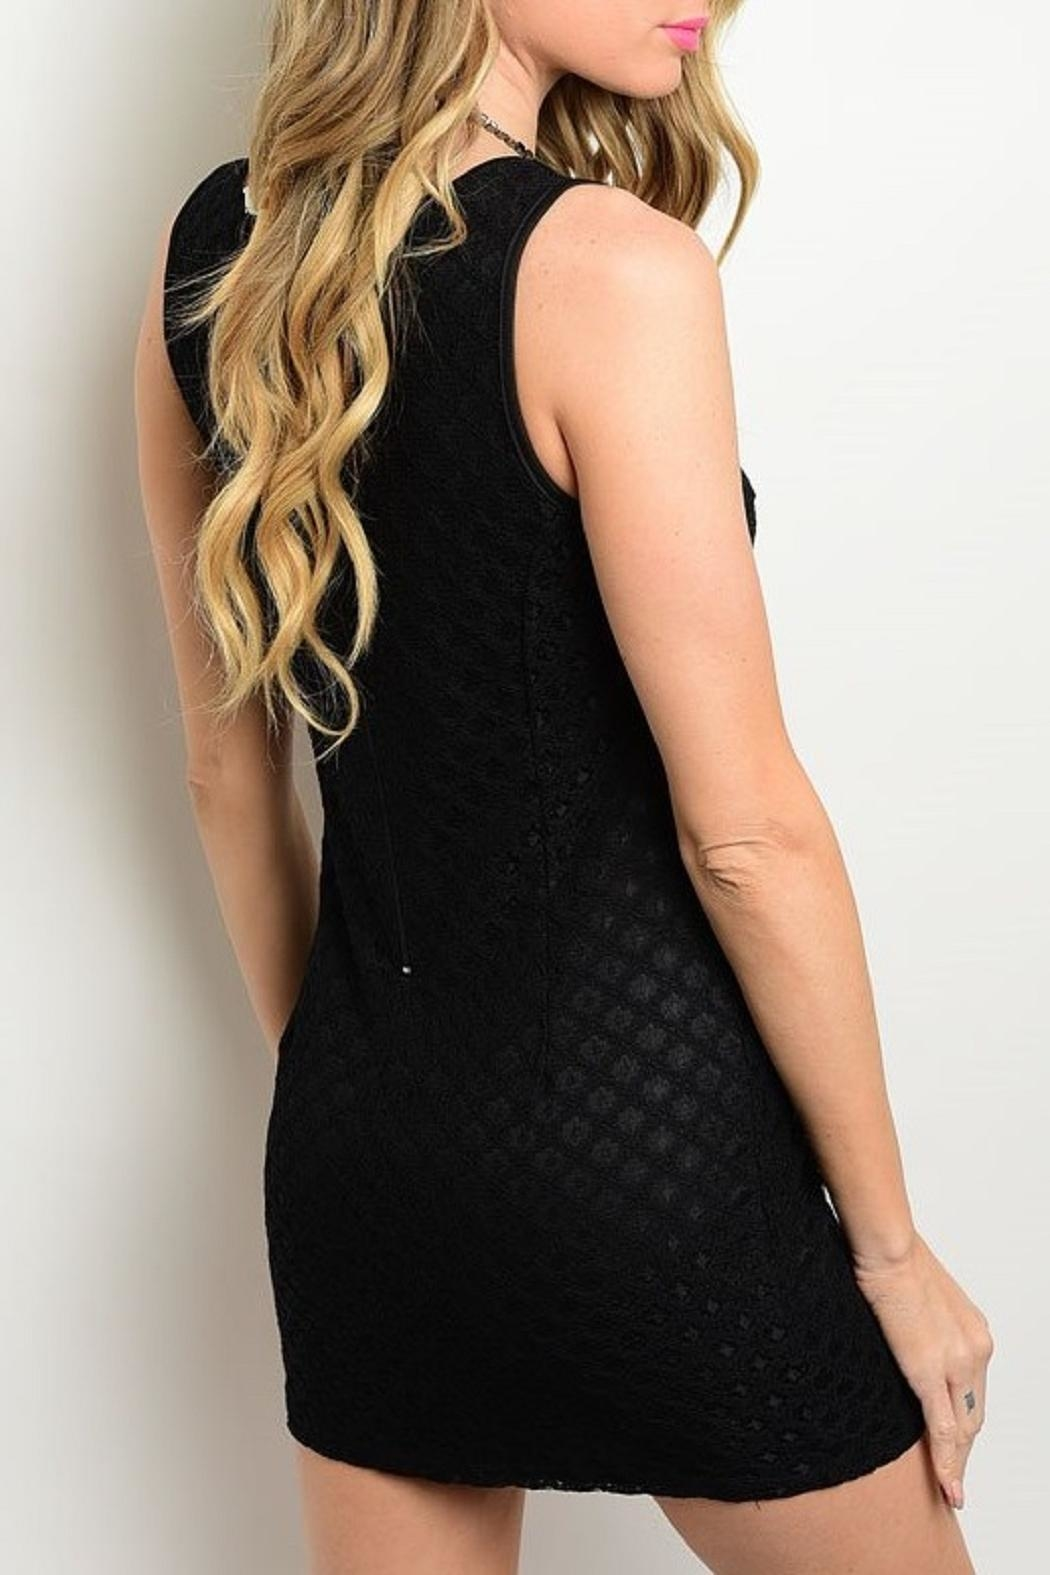 Adore Clothes & More Diamond Pattern Dress - Side Cropped Image